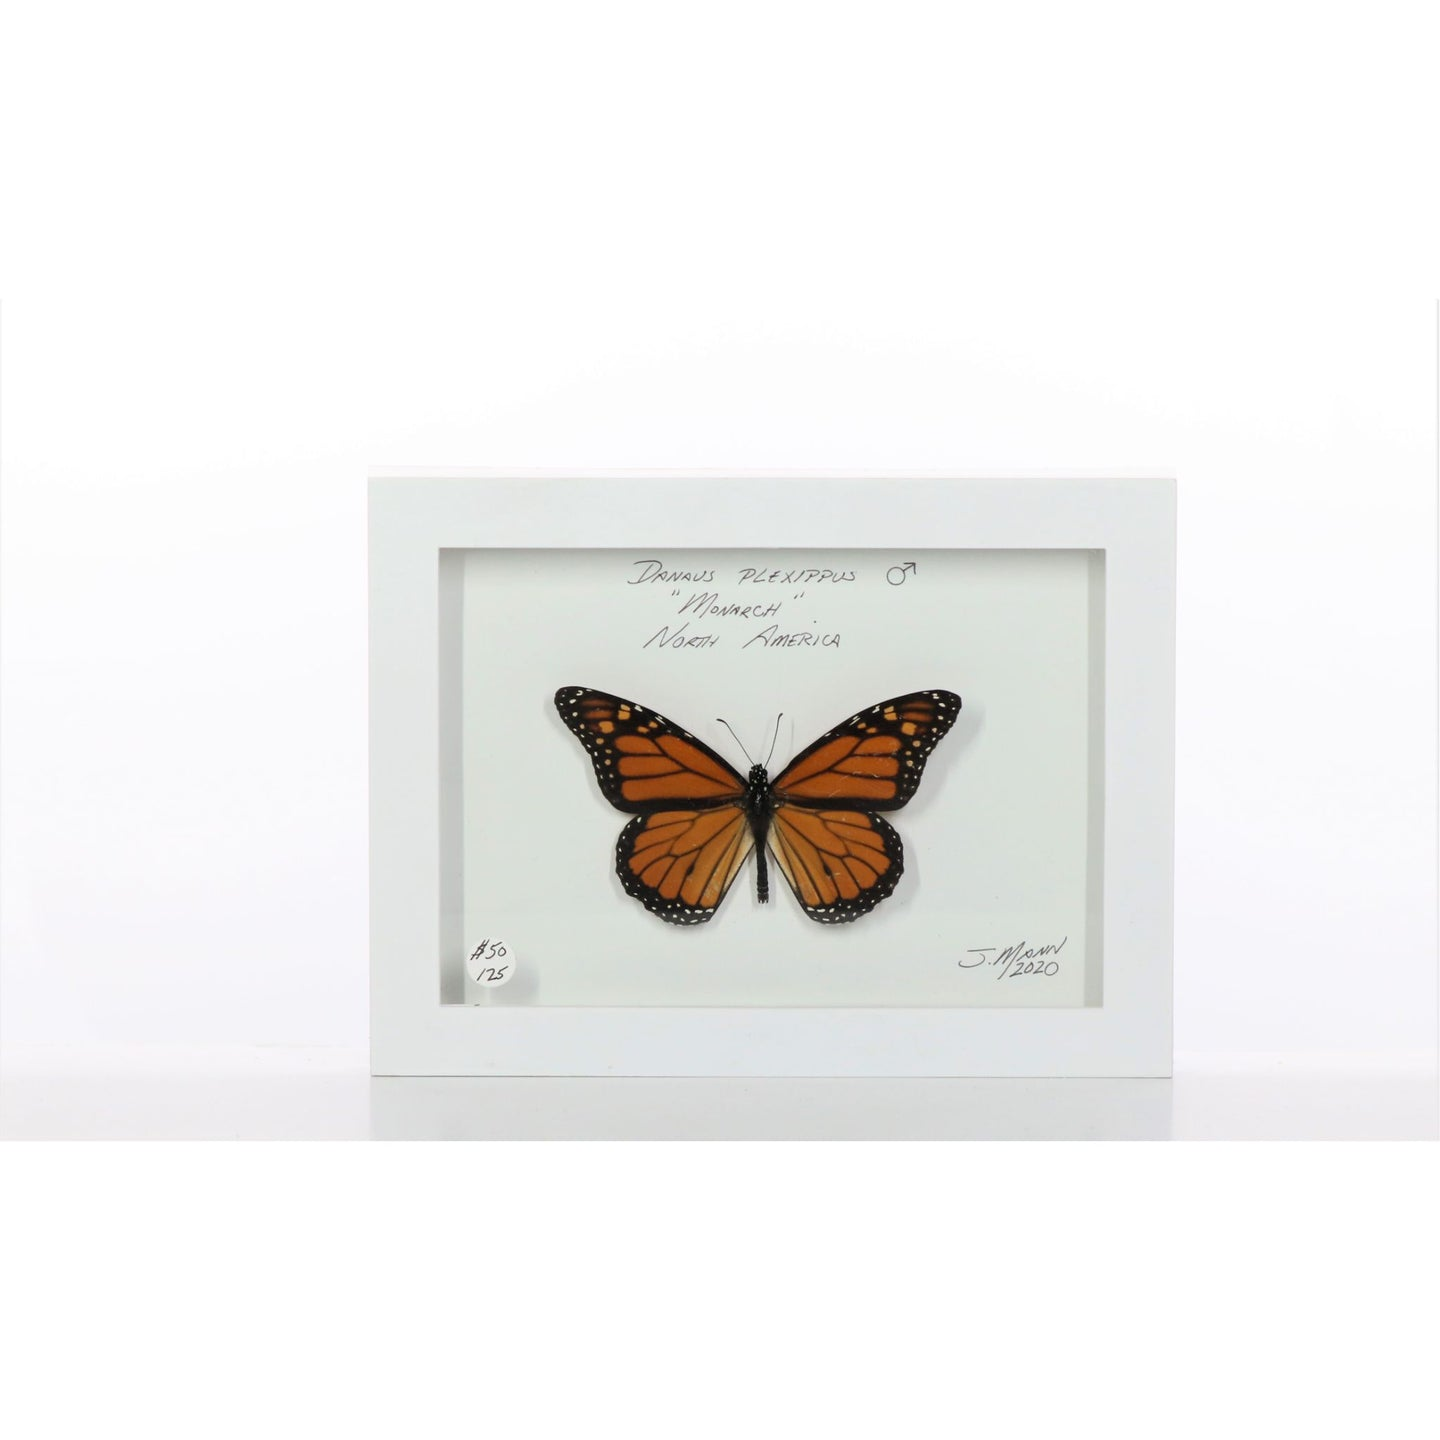 Monarch 5x7 White #125 Framed Art - Insecta Etcetera